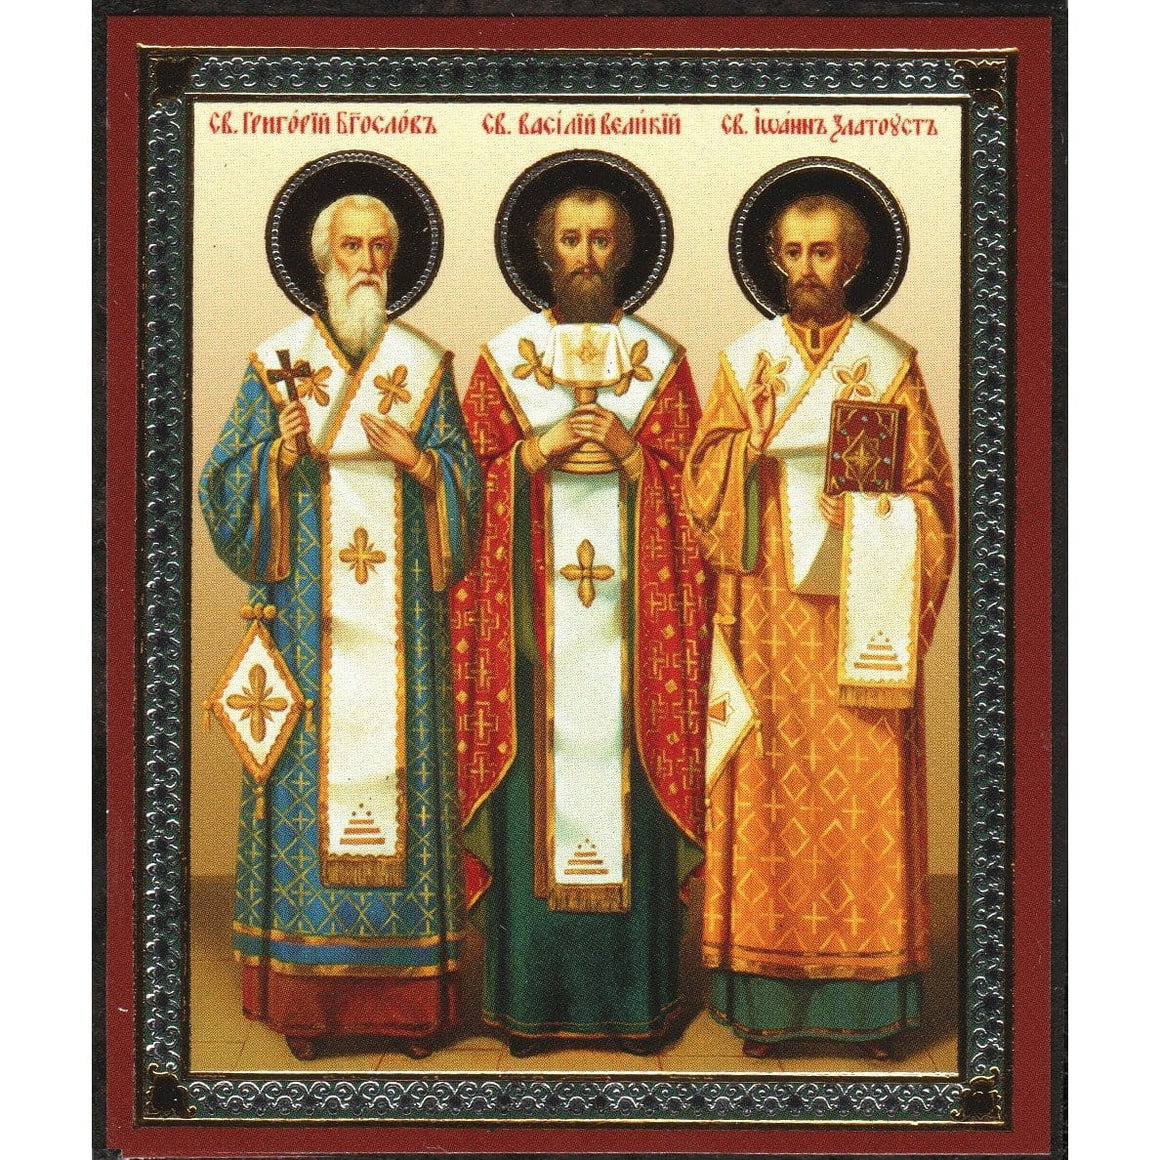 The Three Hierarchs Icon: St. Basil the Great, St. Gregory the Theologian, & St. John Chrysostom